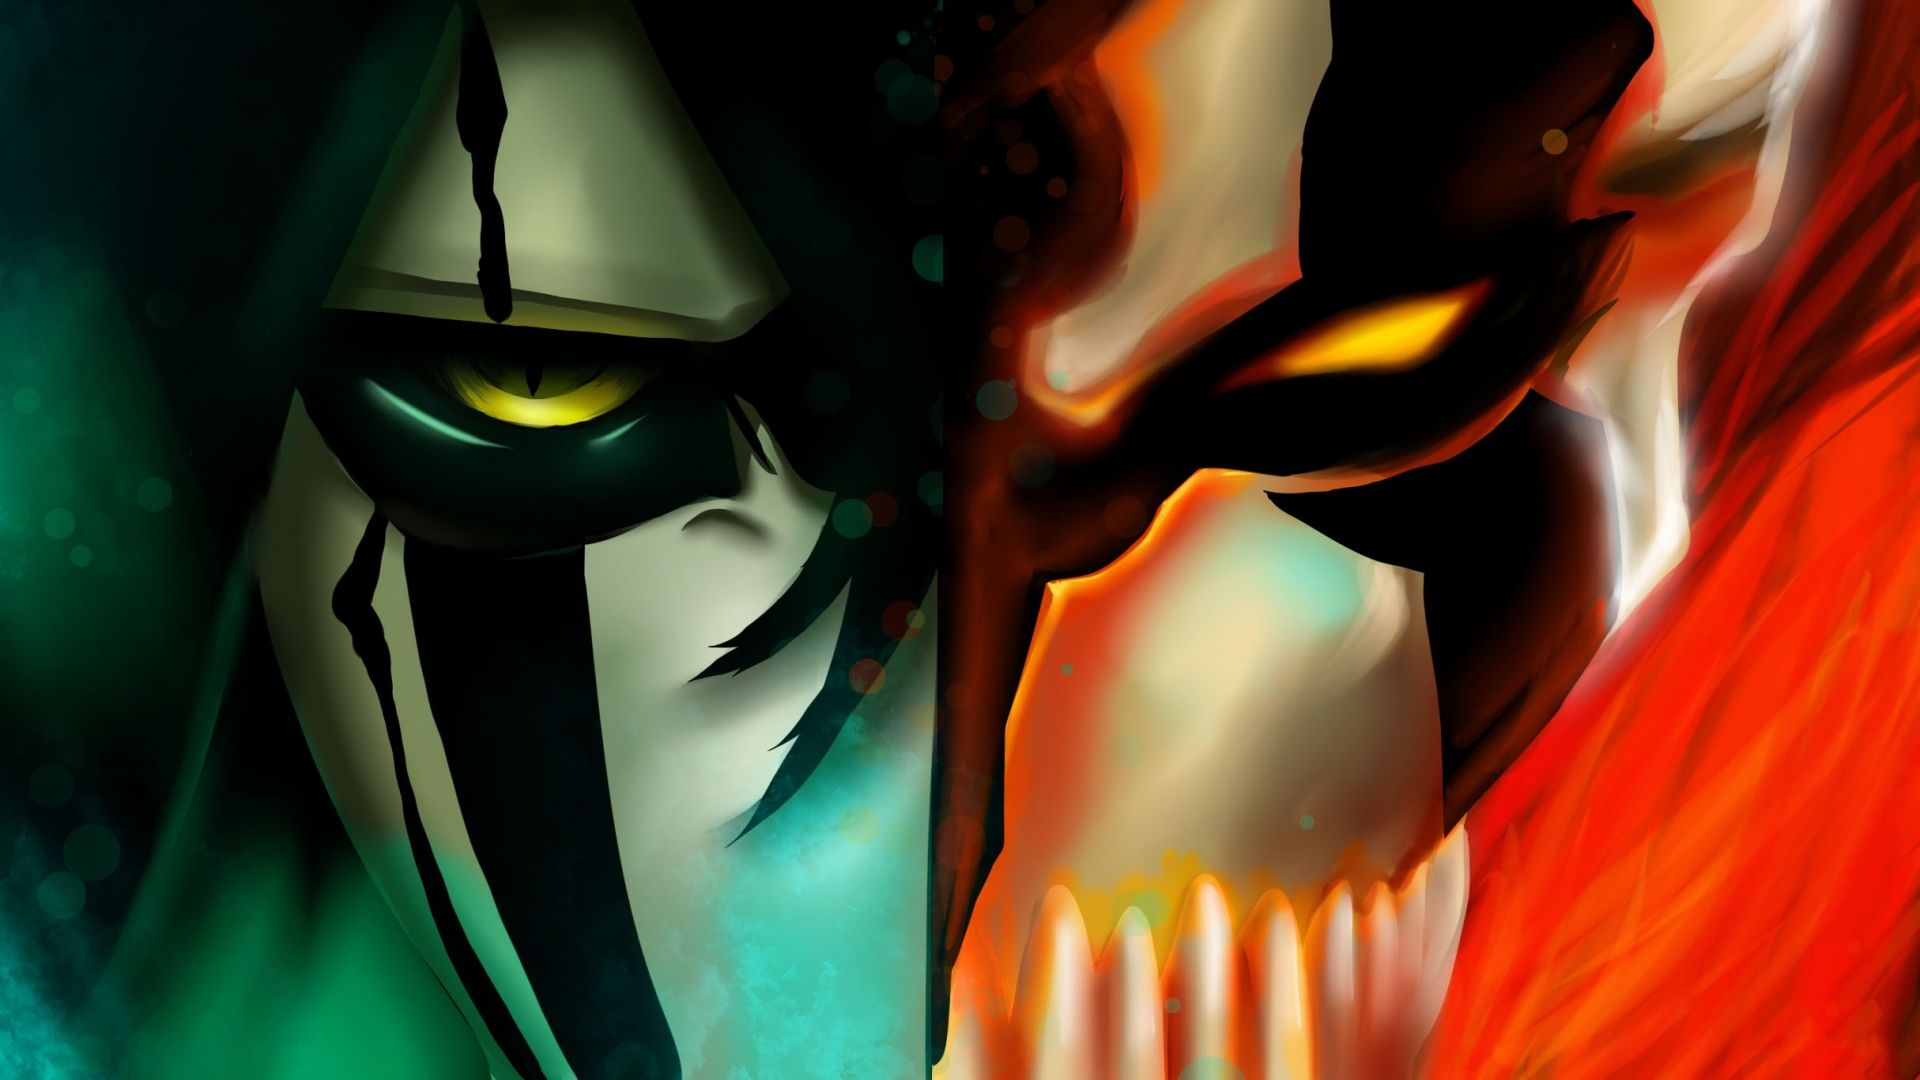 High resolution bleach ulquiorra and ichigo wallpaper full size